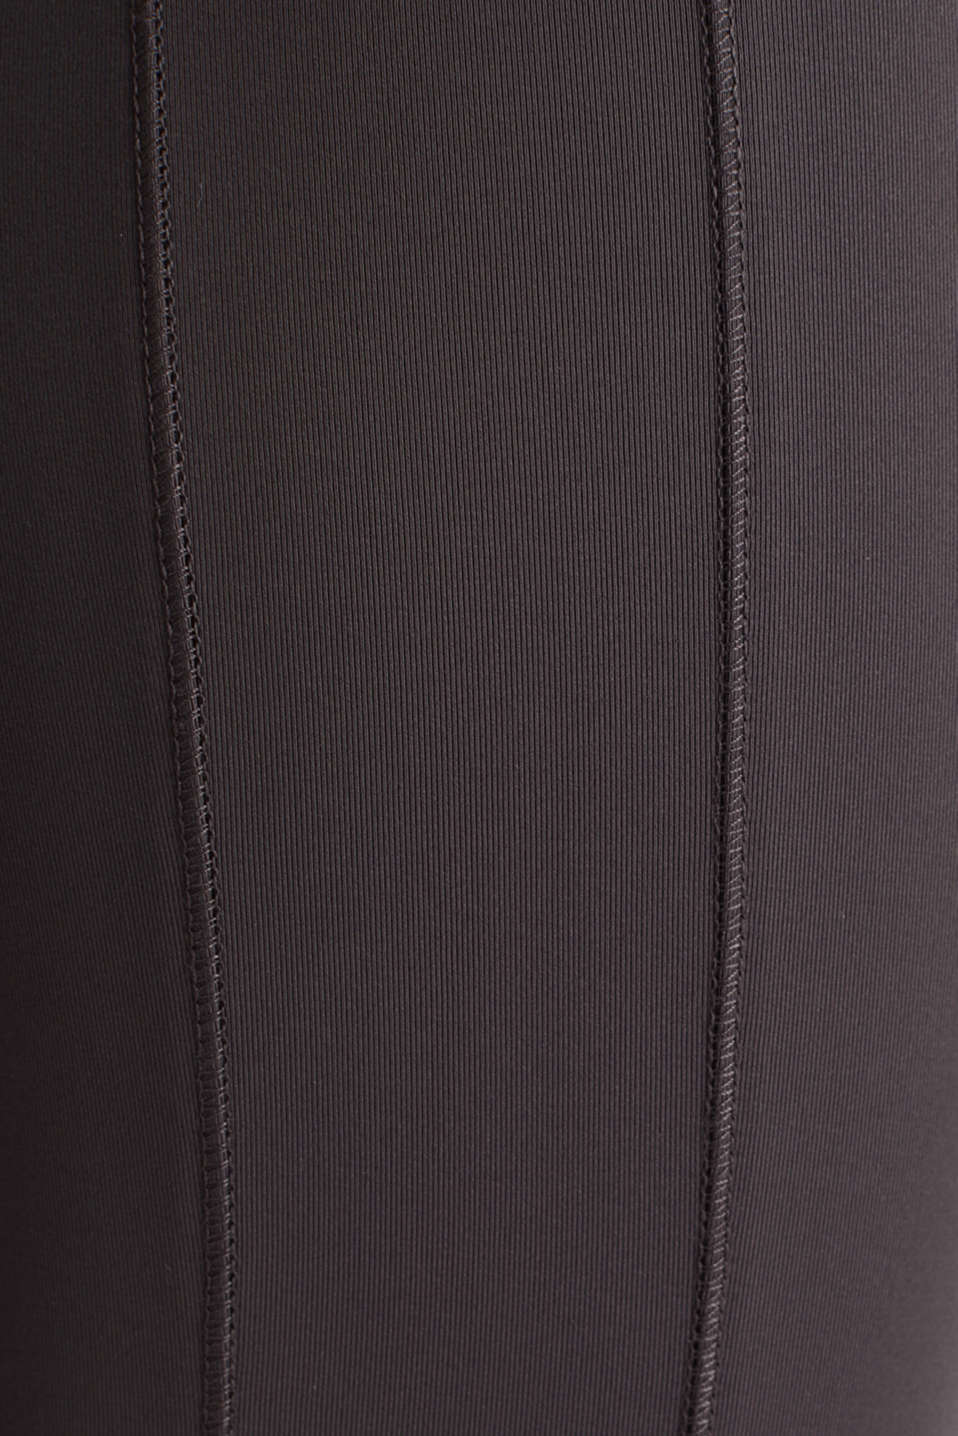 E-DRY leggings with mesh details, ANTHRACITE, detail image number 4